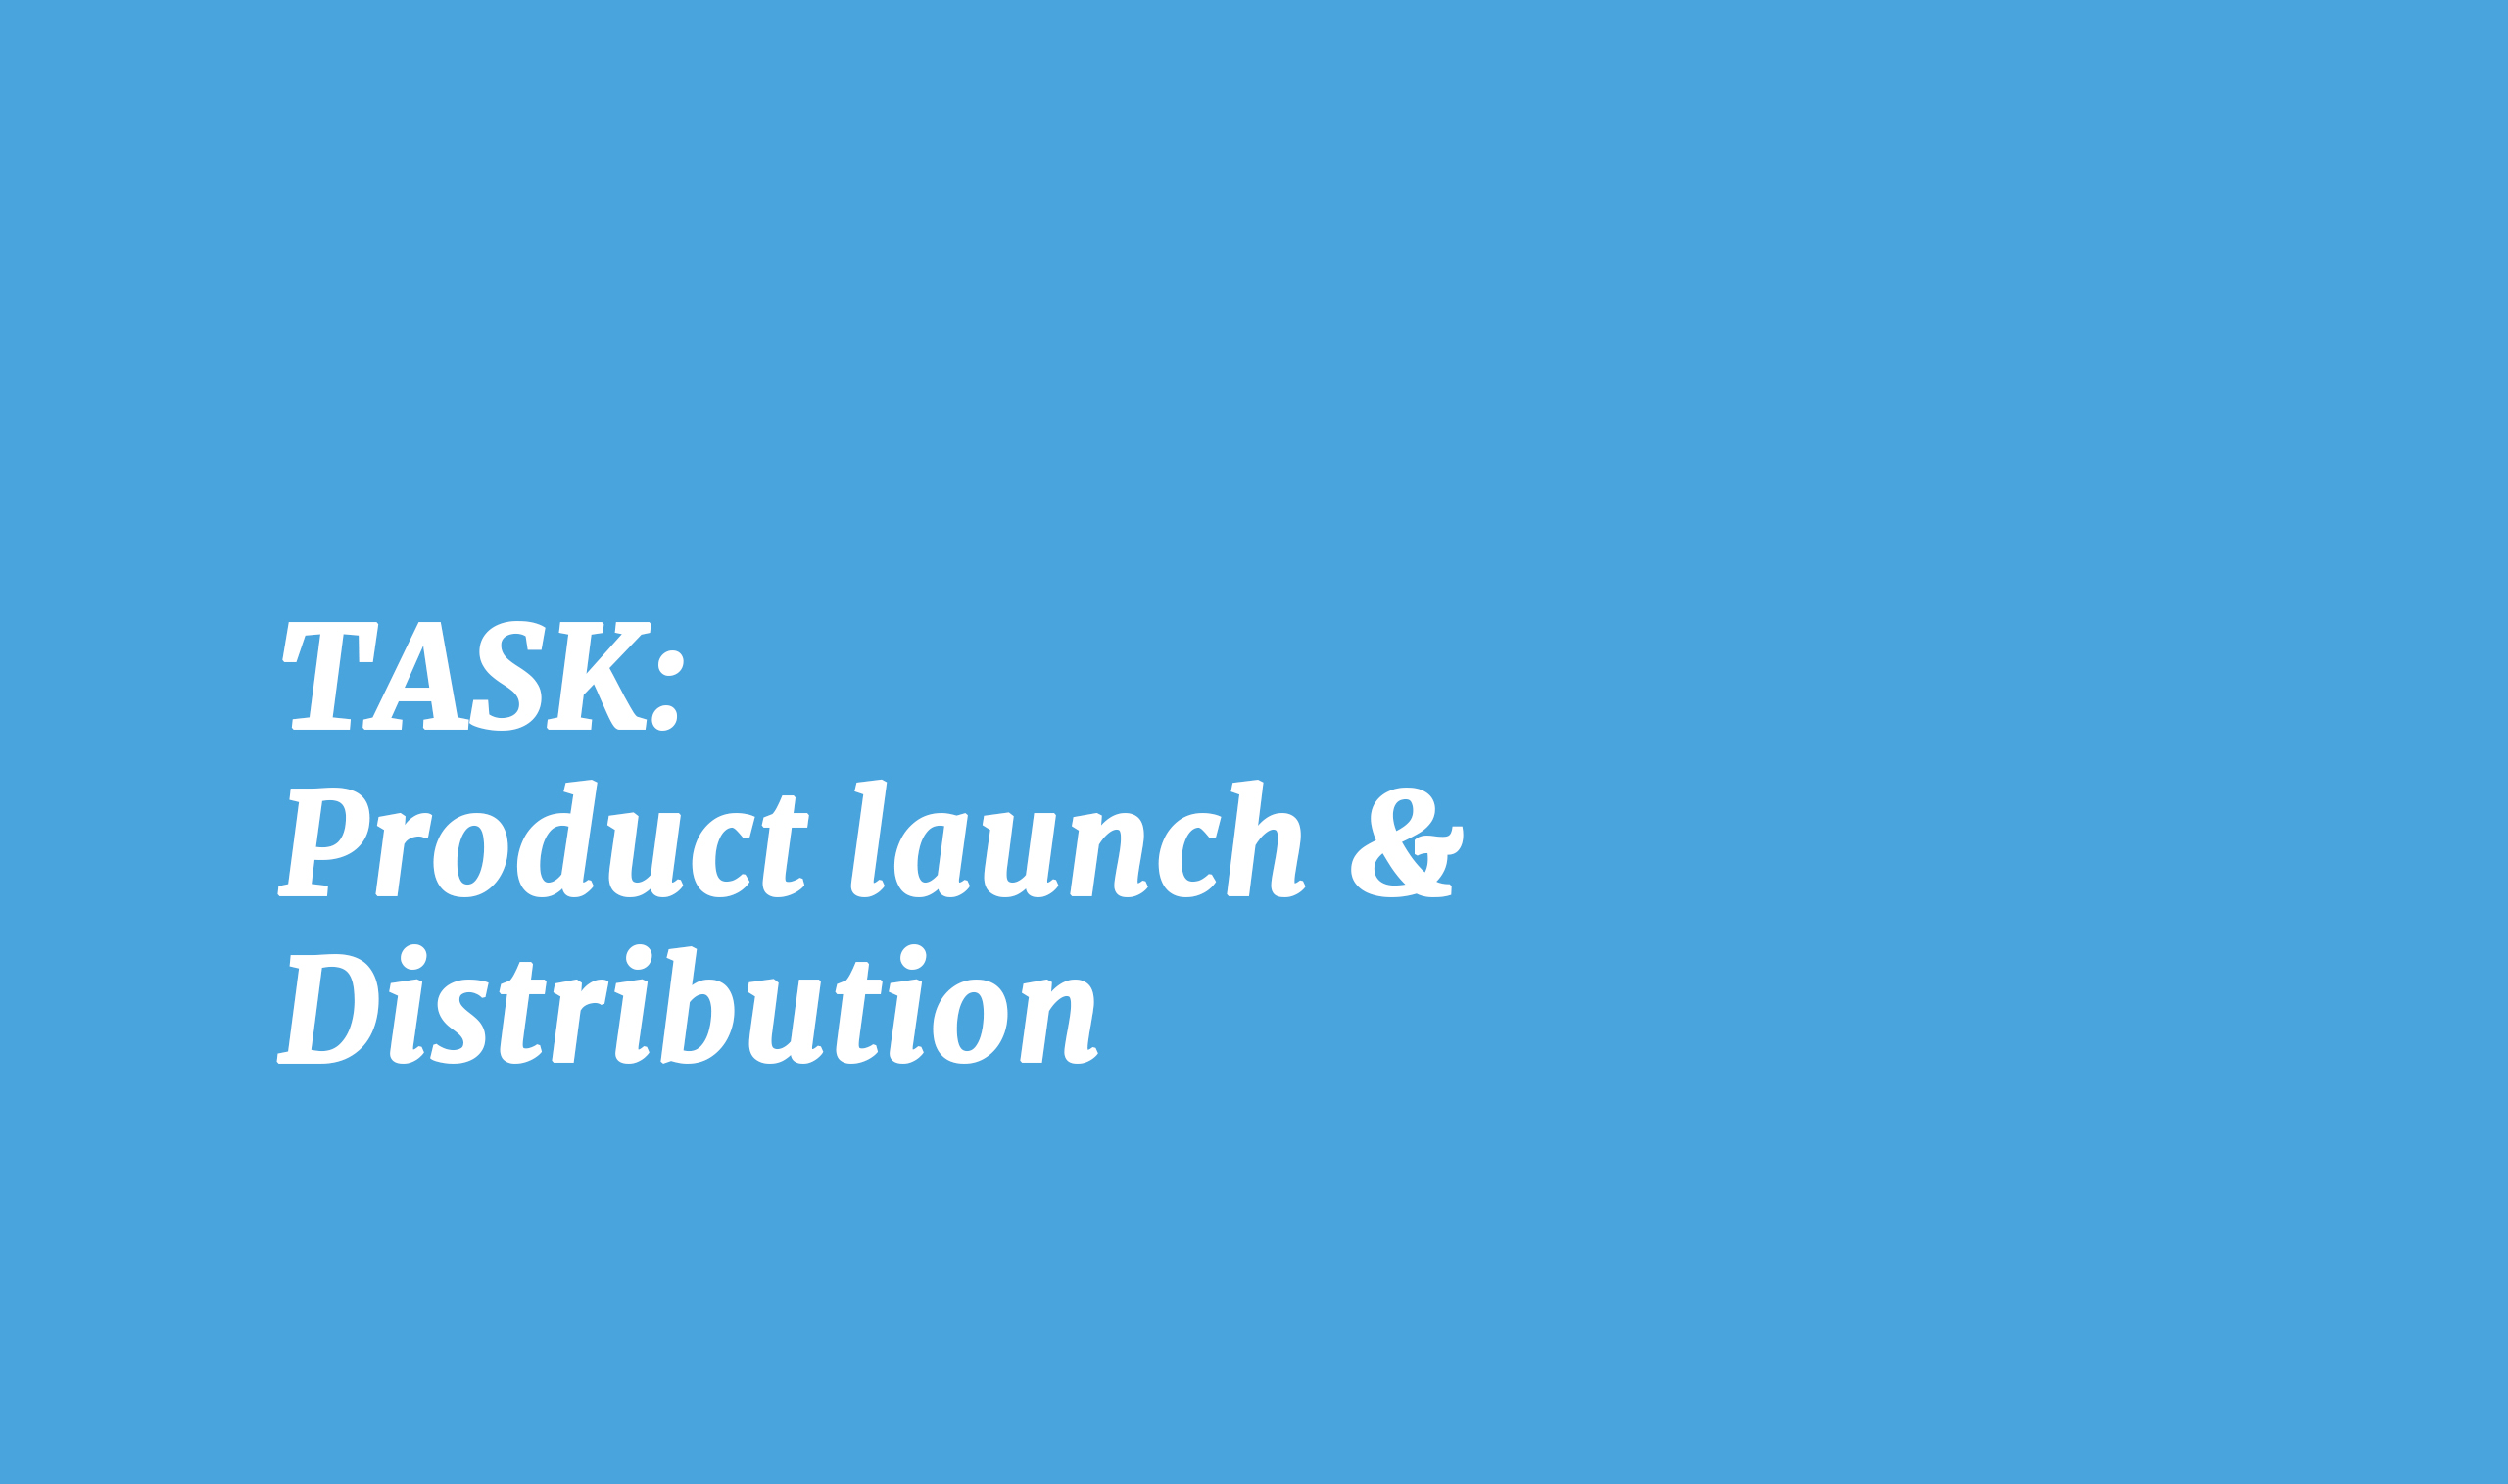 AXXCON product launch